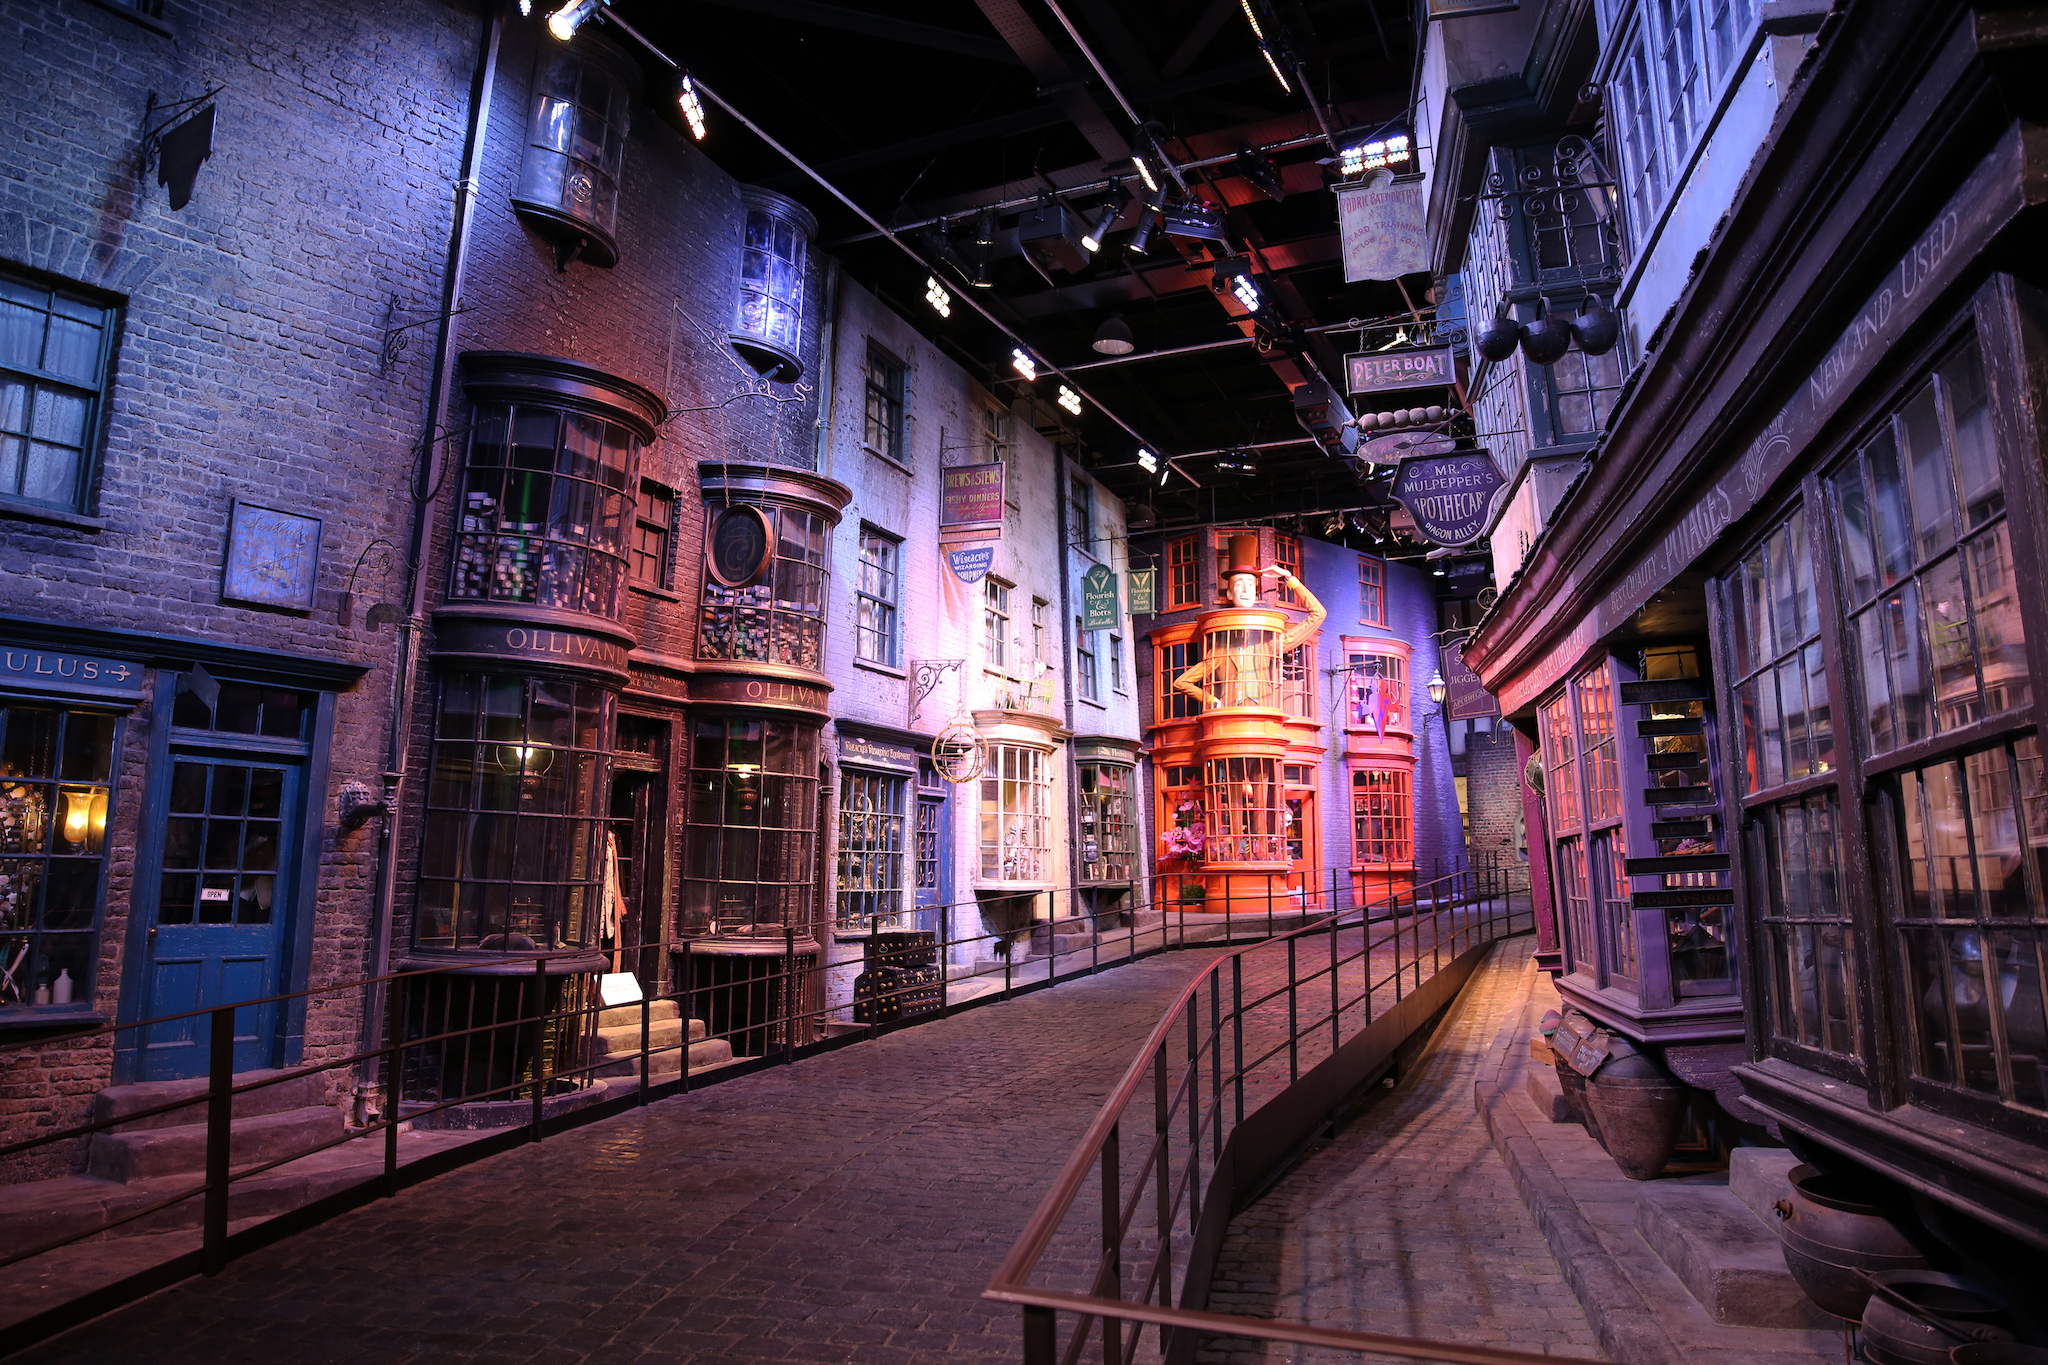 DO NOT REUSE Diagon Alley, Warner Bros. Studio Tour London, as part of Creative Solutions campaign